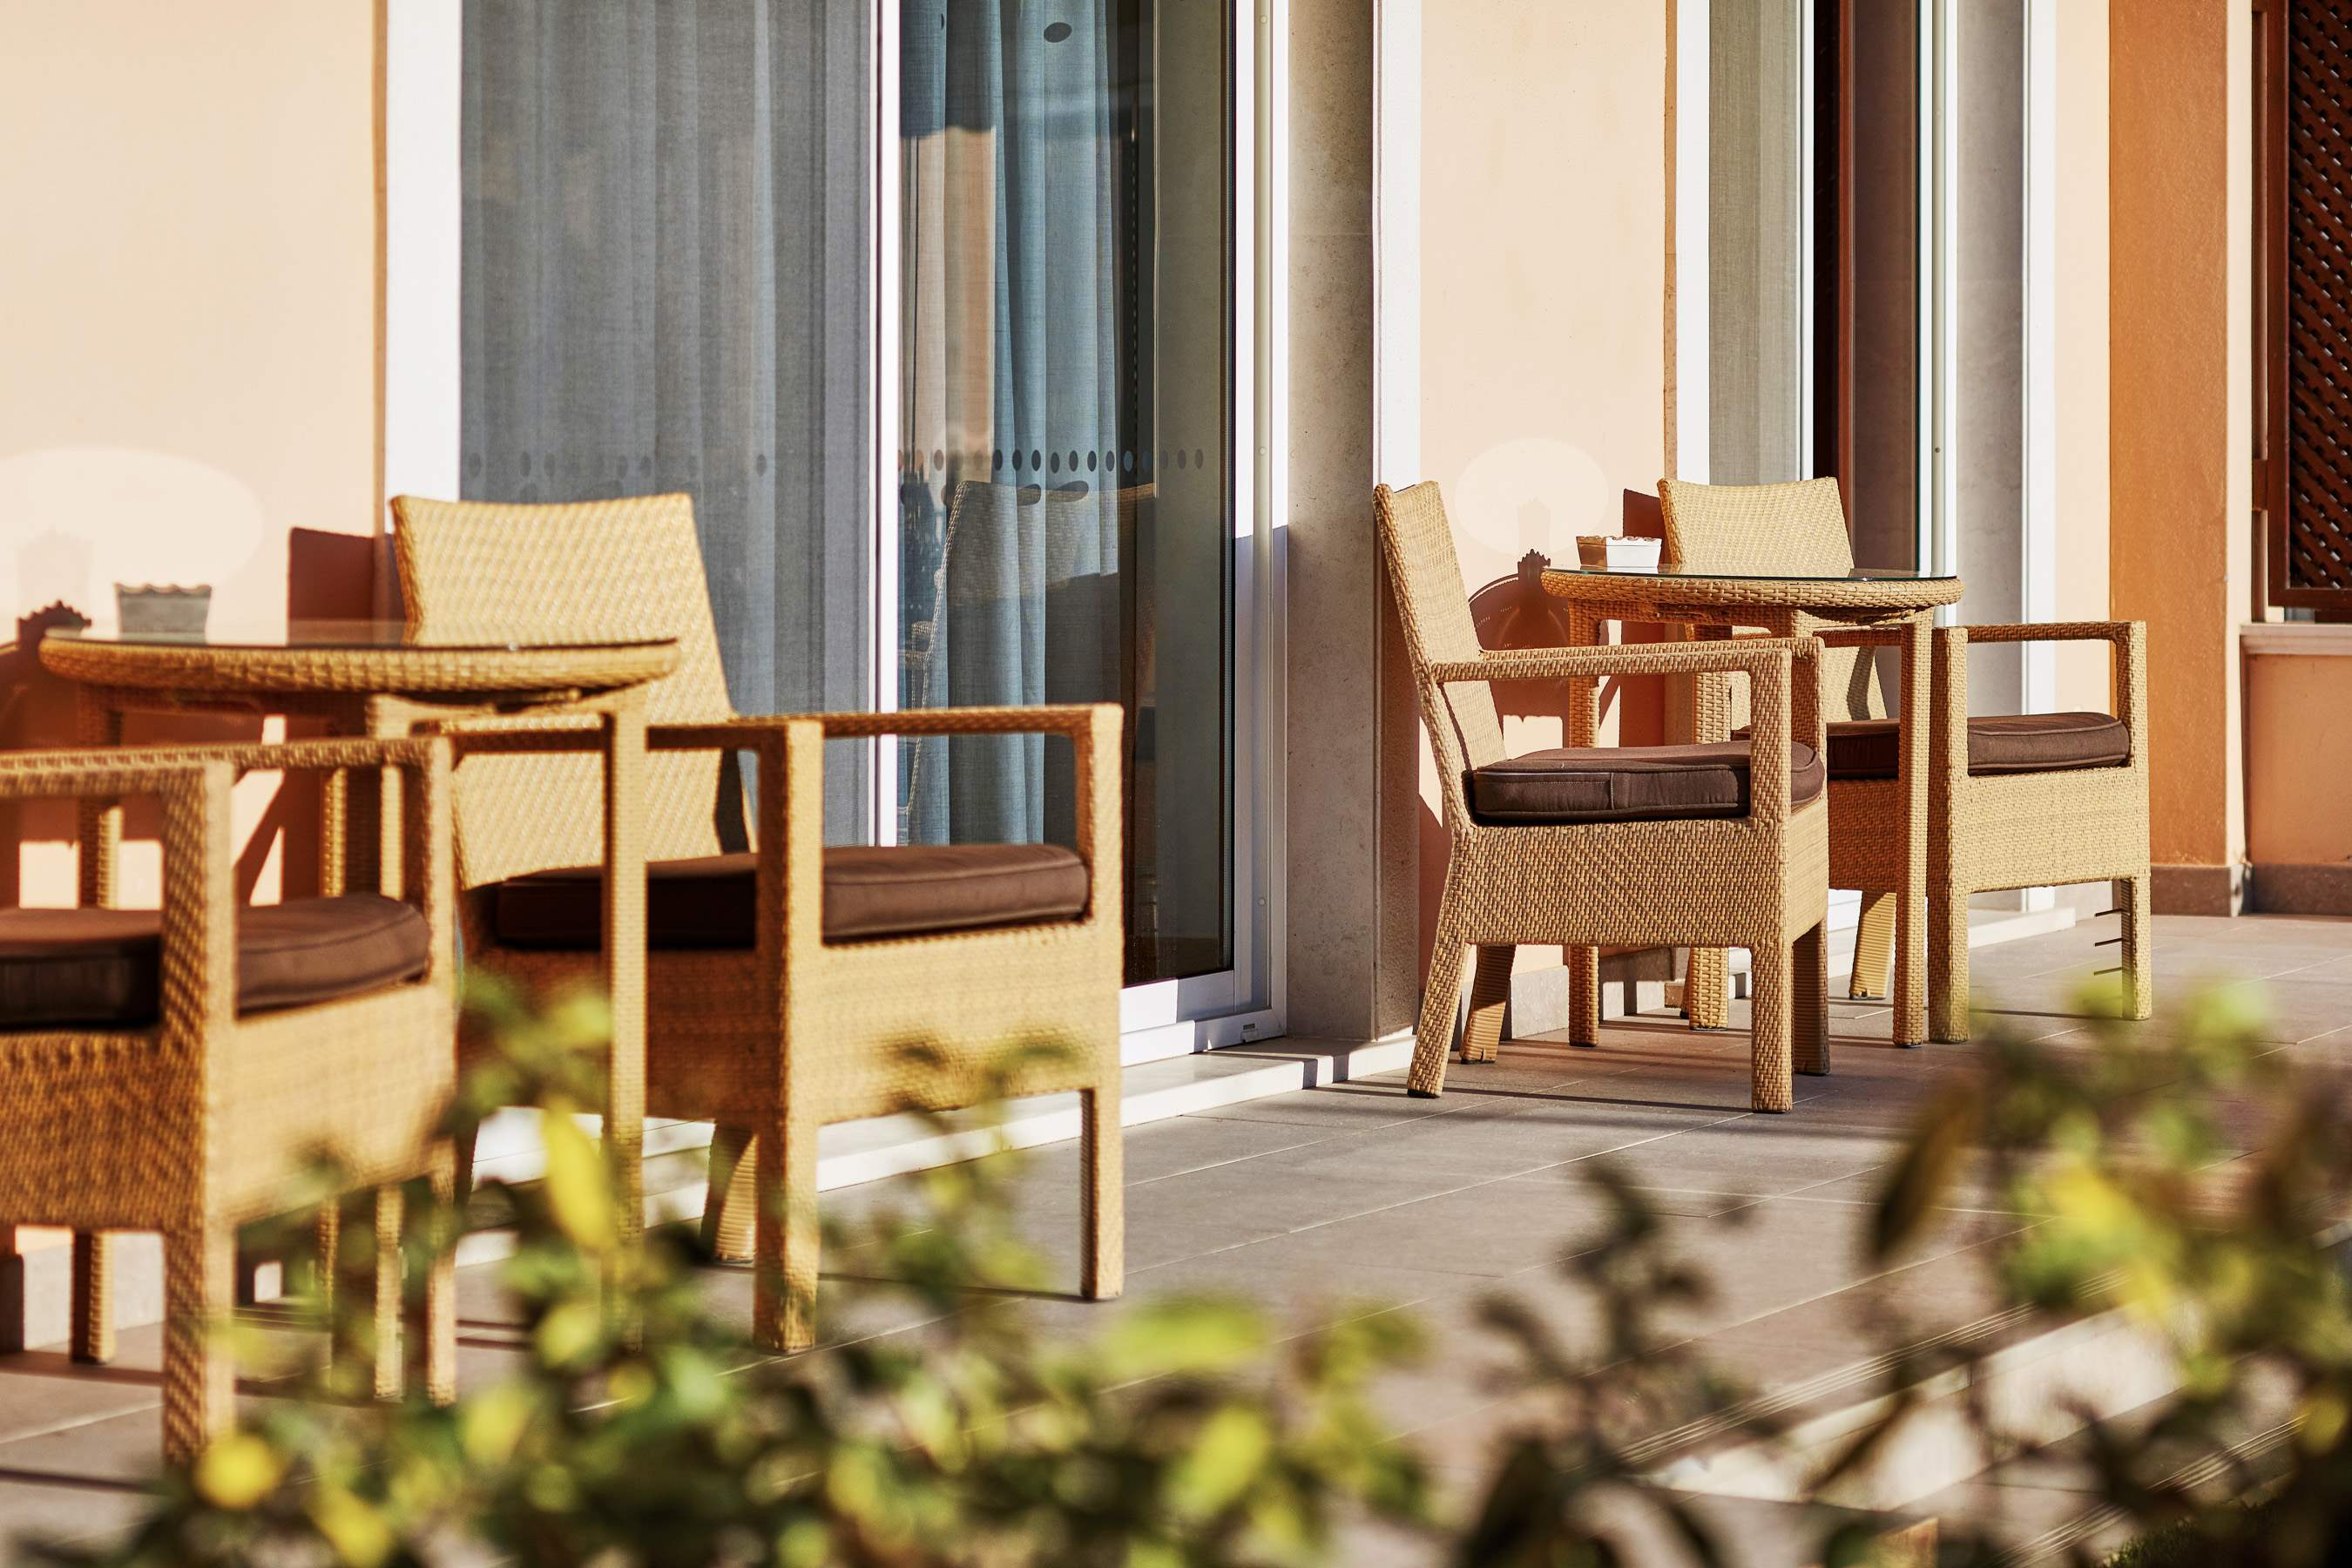 Wyndham Grand Algarve 1 Bedroom, Deluxe Suite, Pool Side ,Room Only , 1 bedroom apartment in Wyndham Grand Algarve, Algarve Photo #25